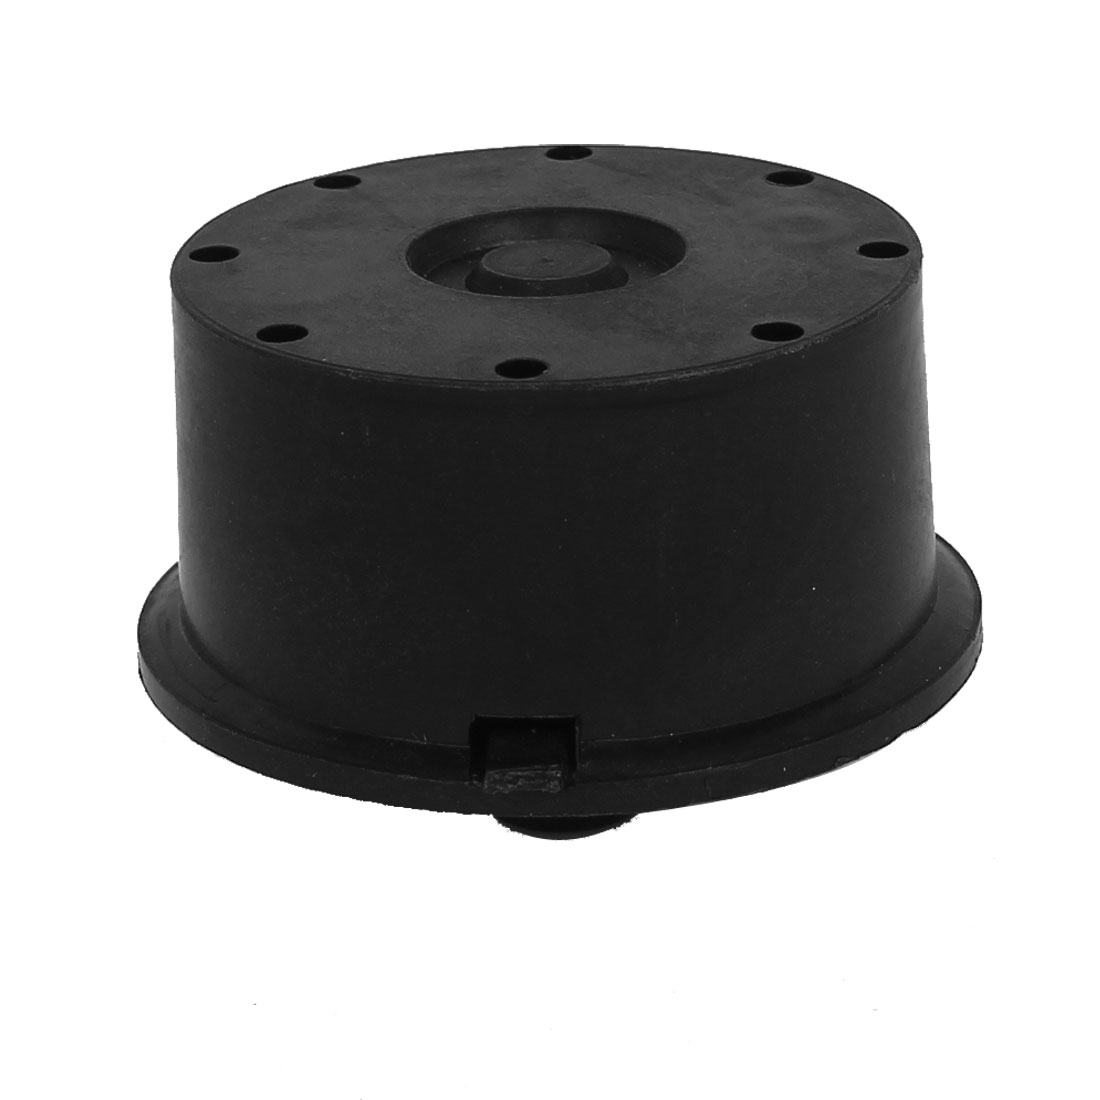 16mm Thread Black Plastic Muffler for Air Compressor